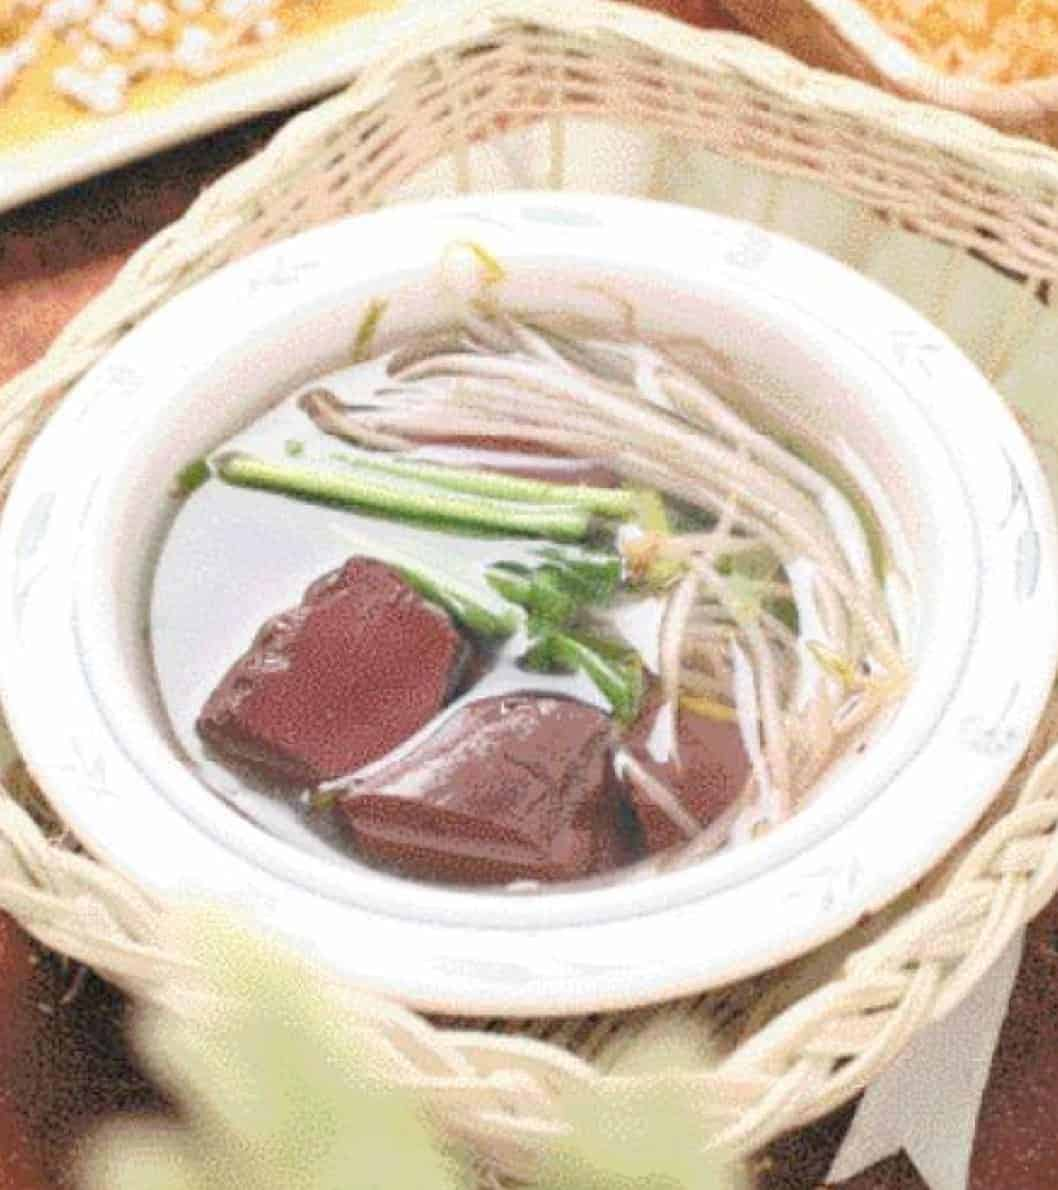 Leek and Pork Blood Curd Soup Recipe